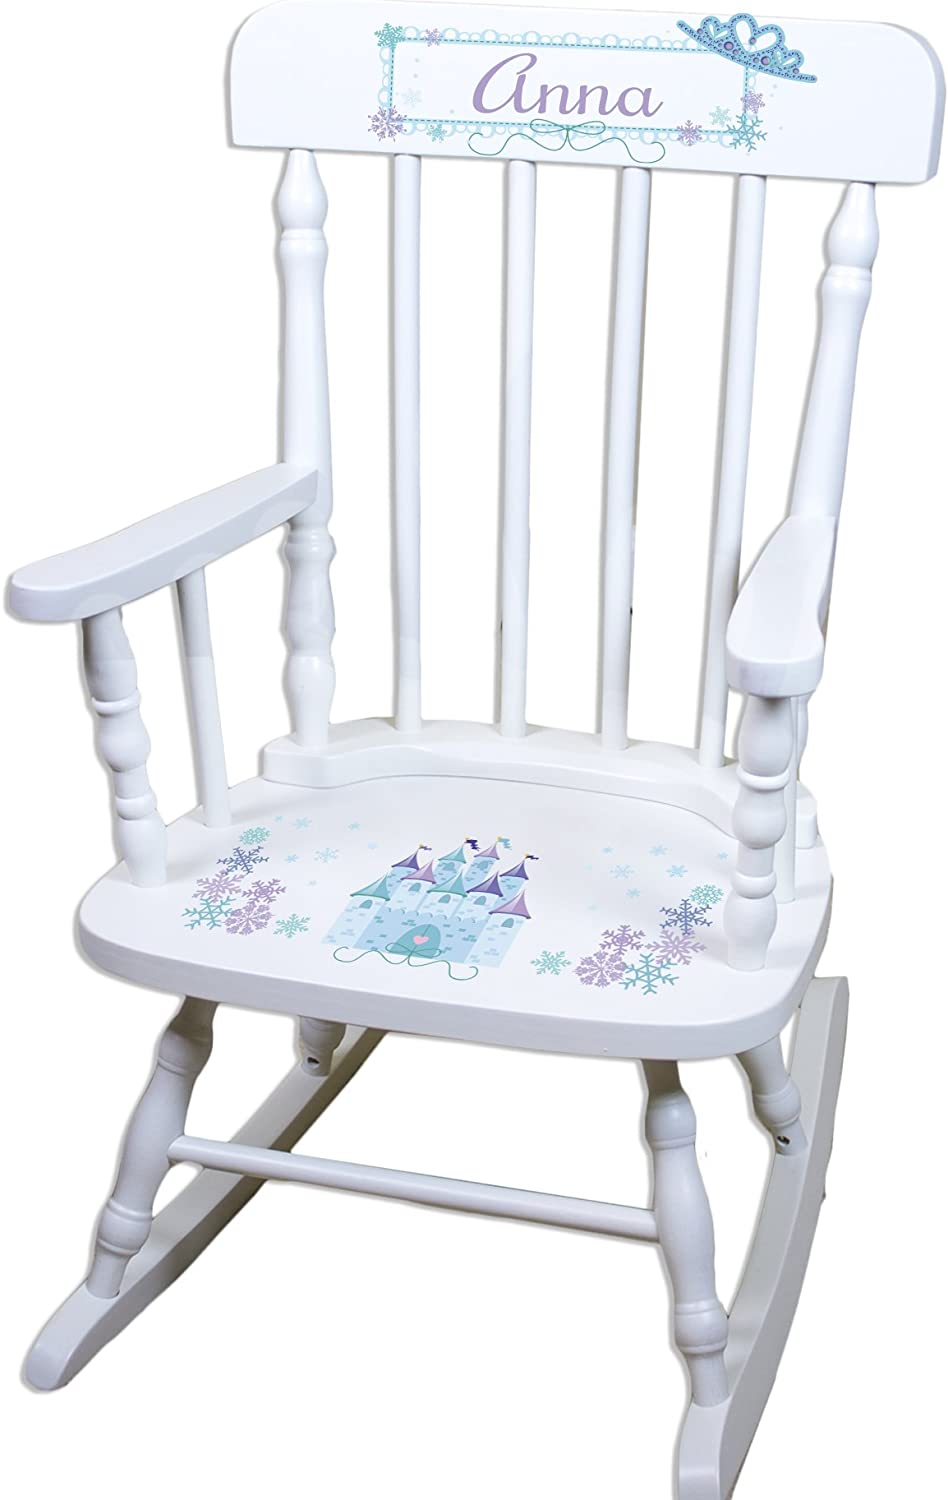 Max 57% OFF Children's Personalized White Ice Max 53% OFF Princess Rocking Chair